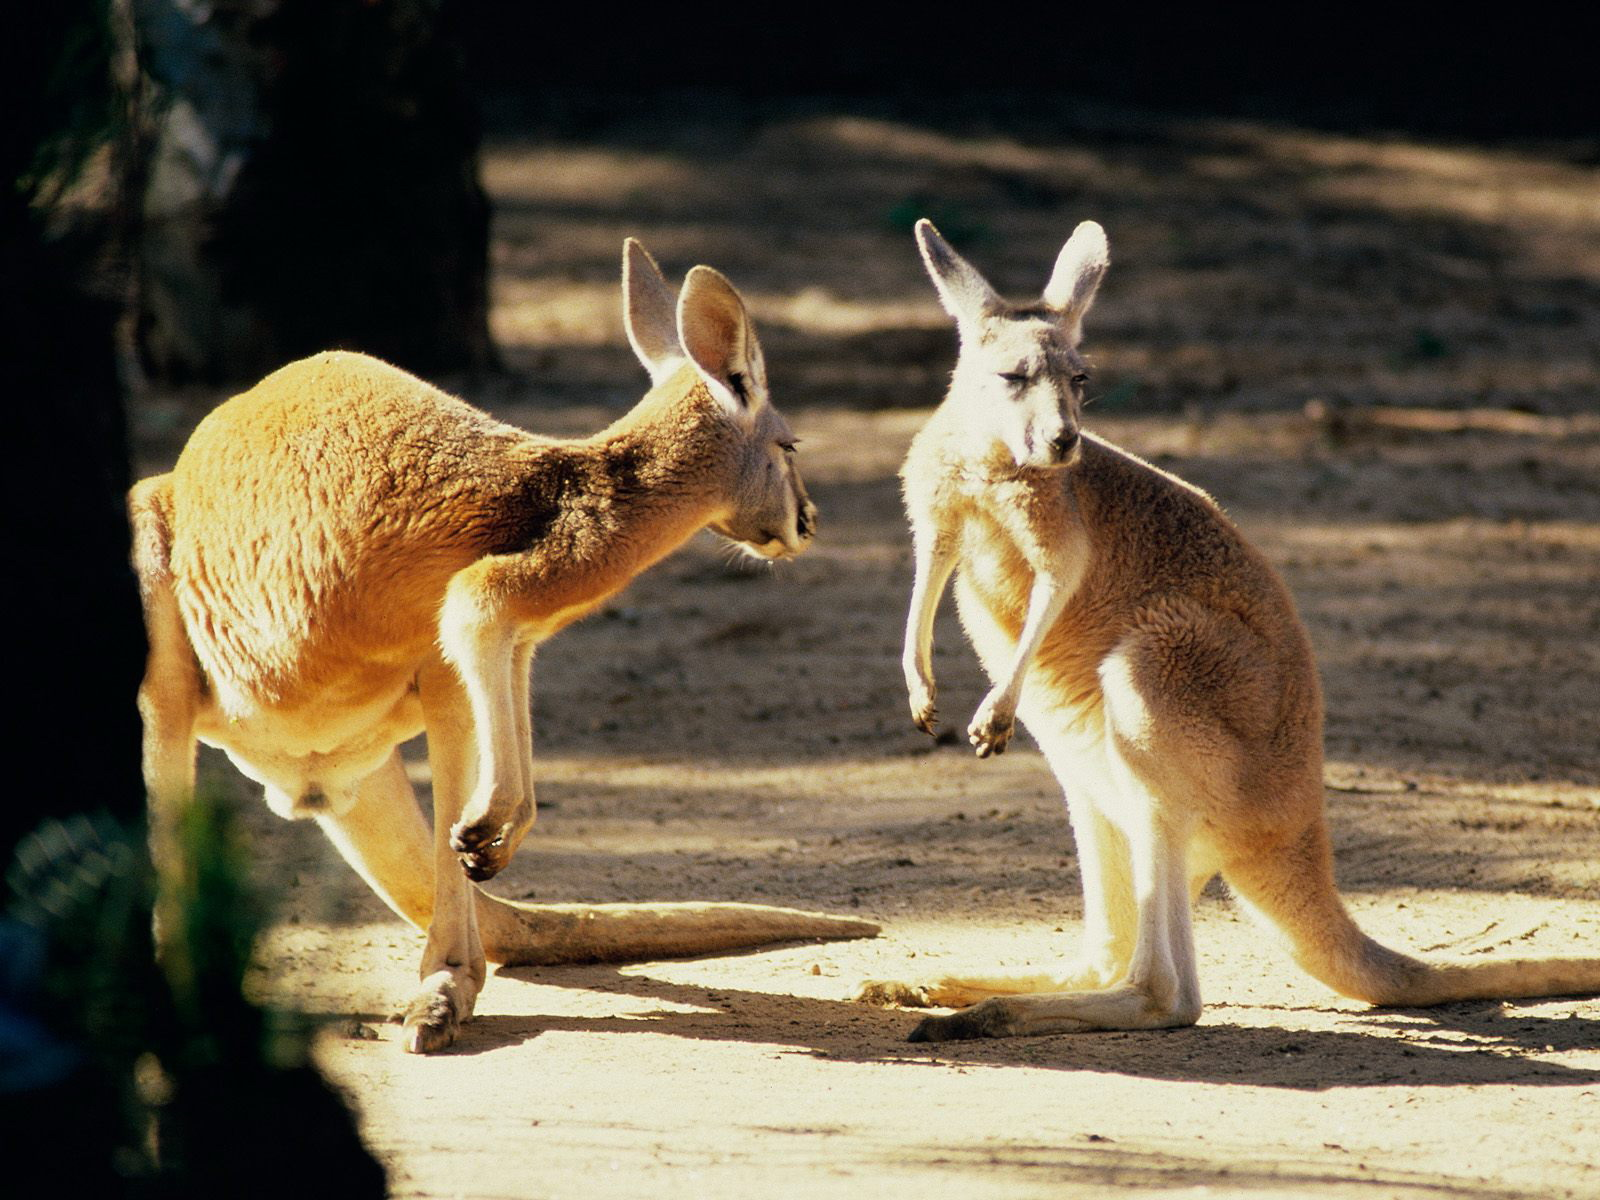 click to free download the wallpaper--Cute Animals Image, Kangaroos Talking, a Nice Conversation 1600X1200 free wallpaper download